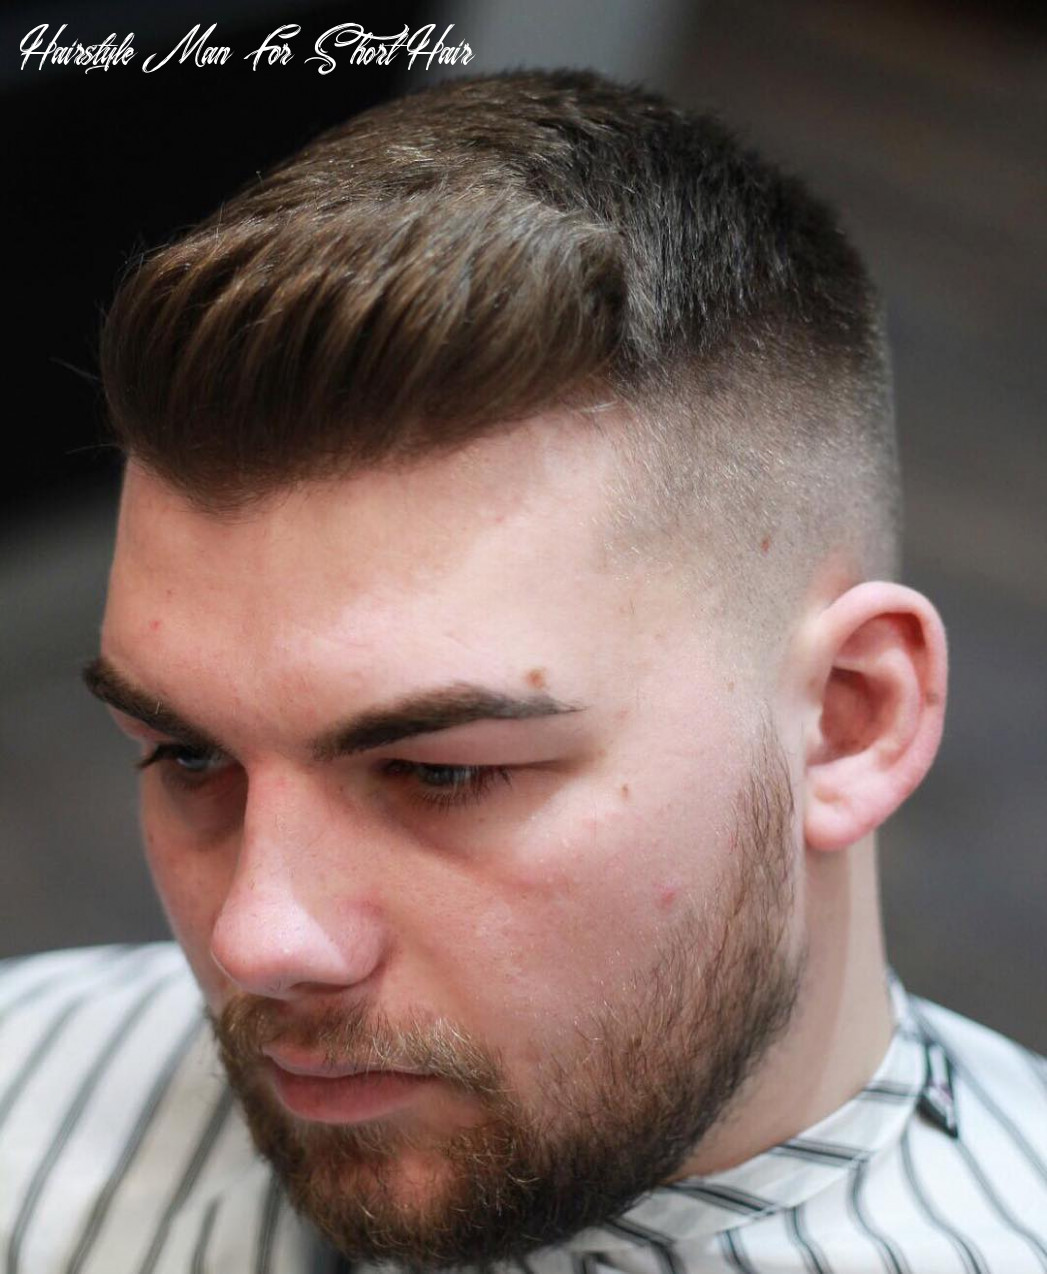 The 11 best short hairstyles for men | improb hairstyle man for short hair